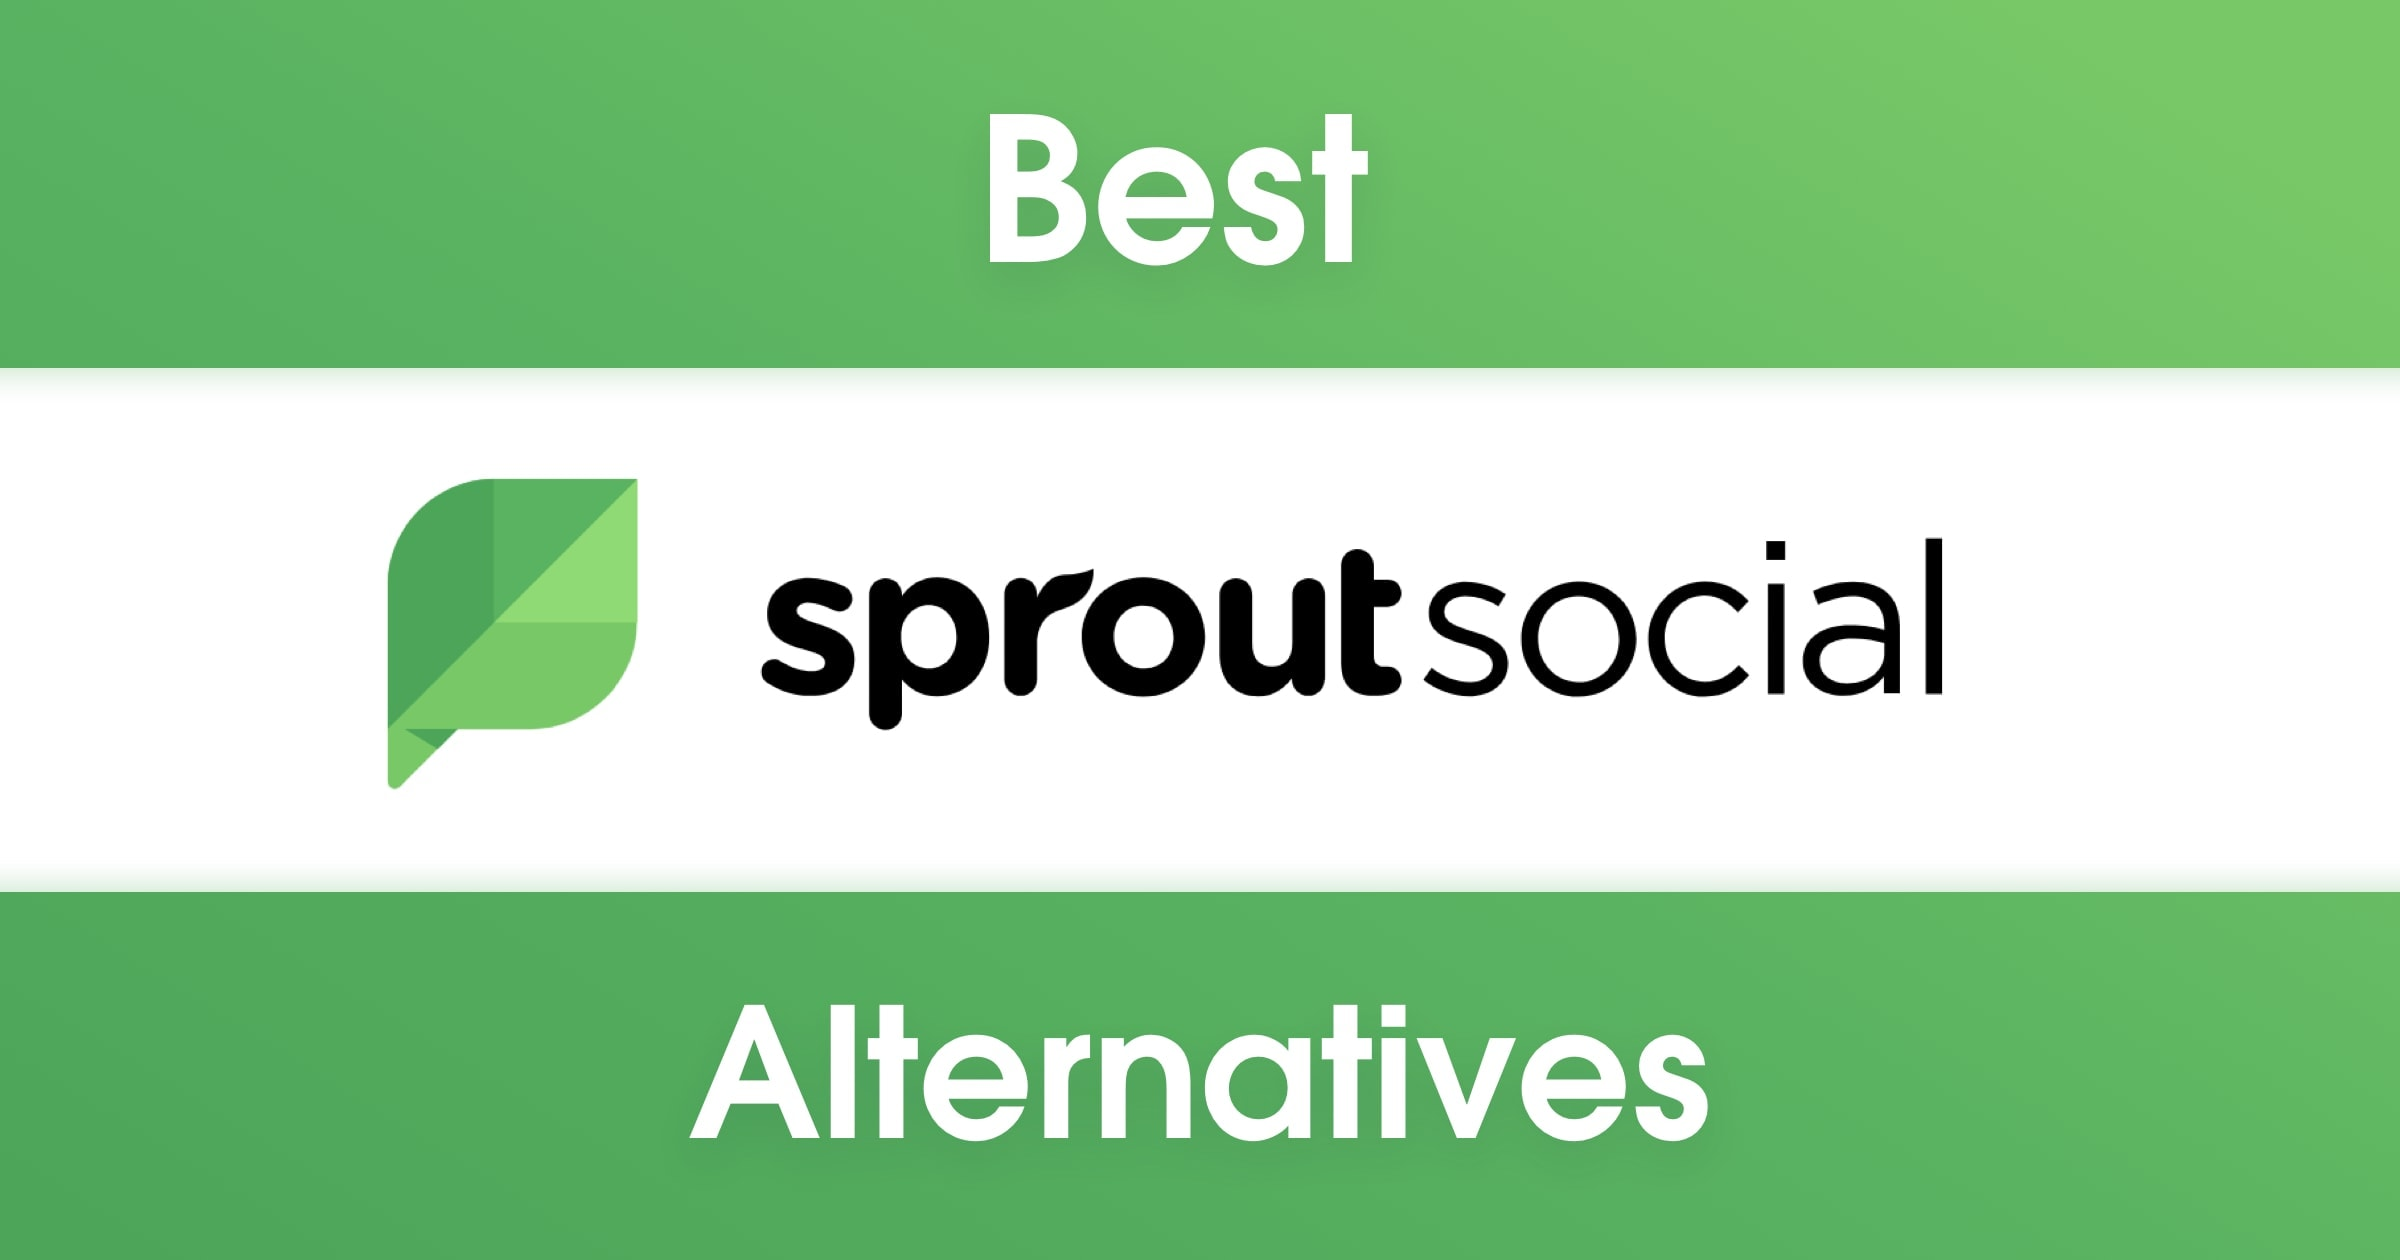 Top 12 Sprout Social Alternatives